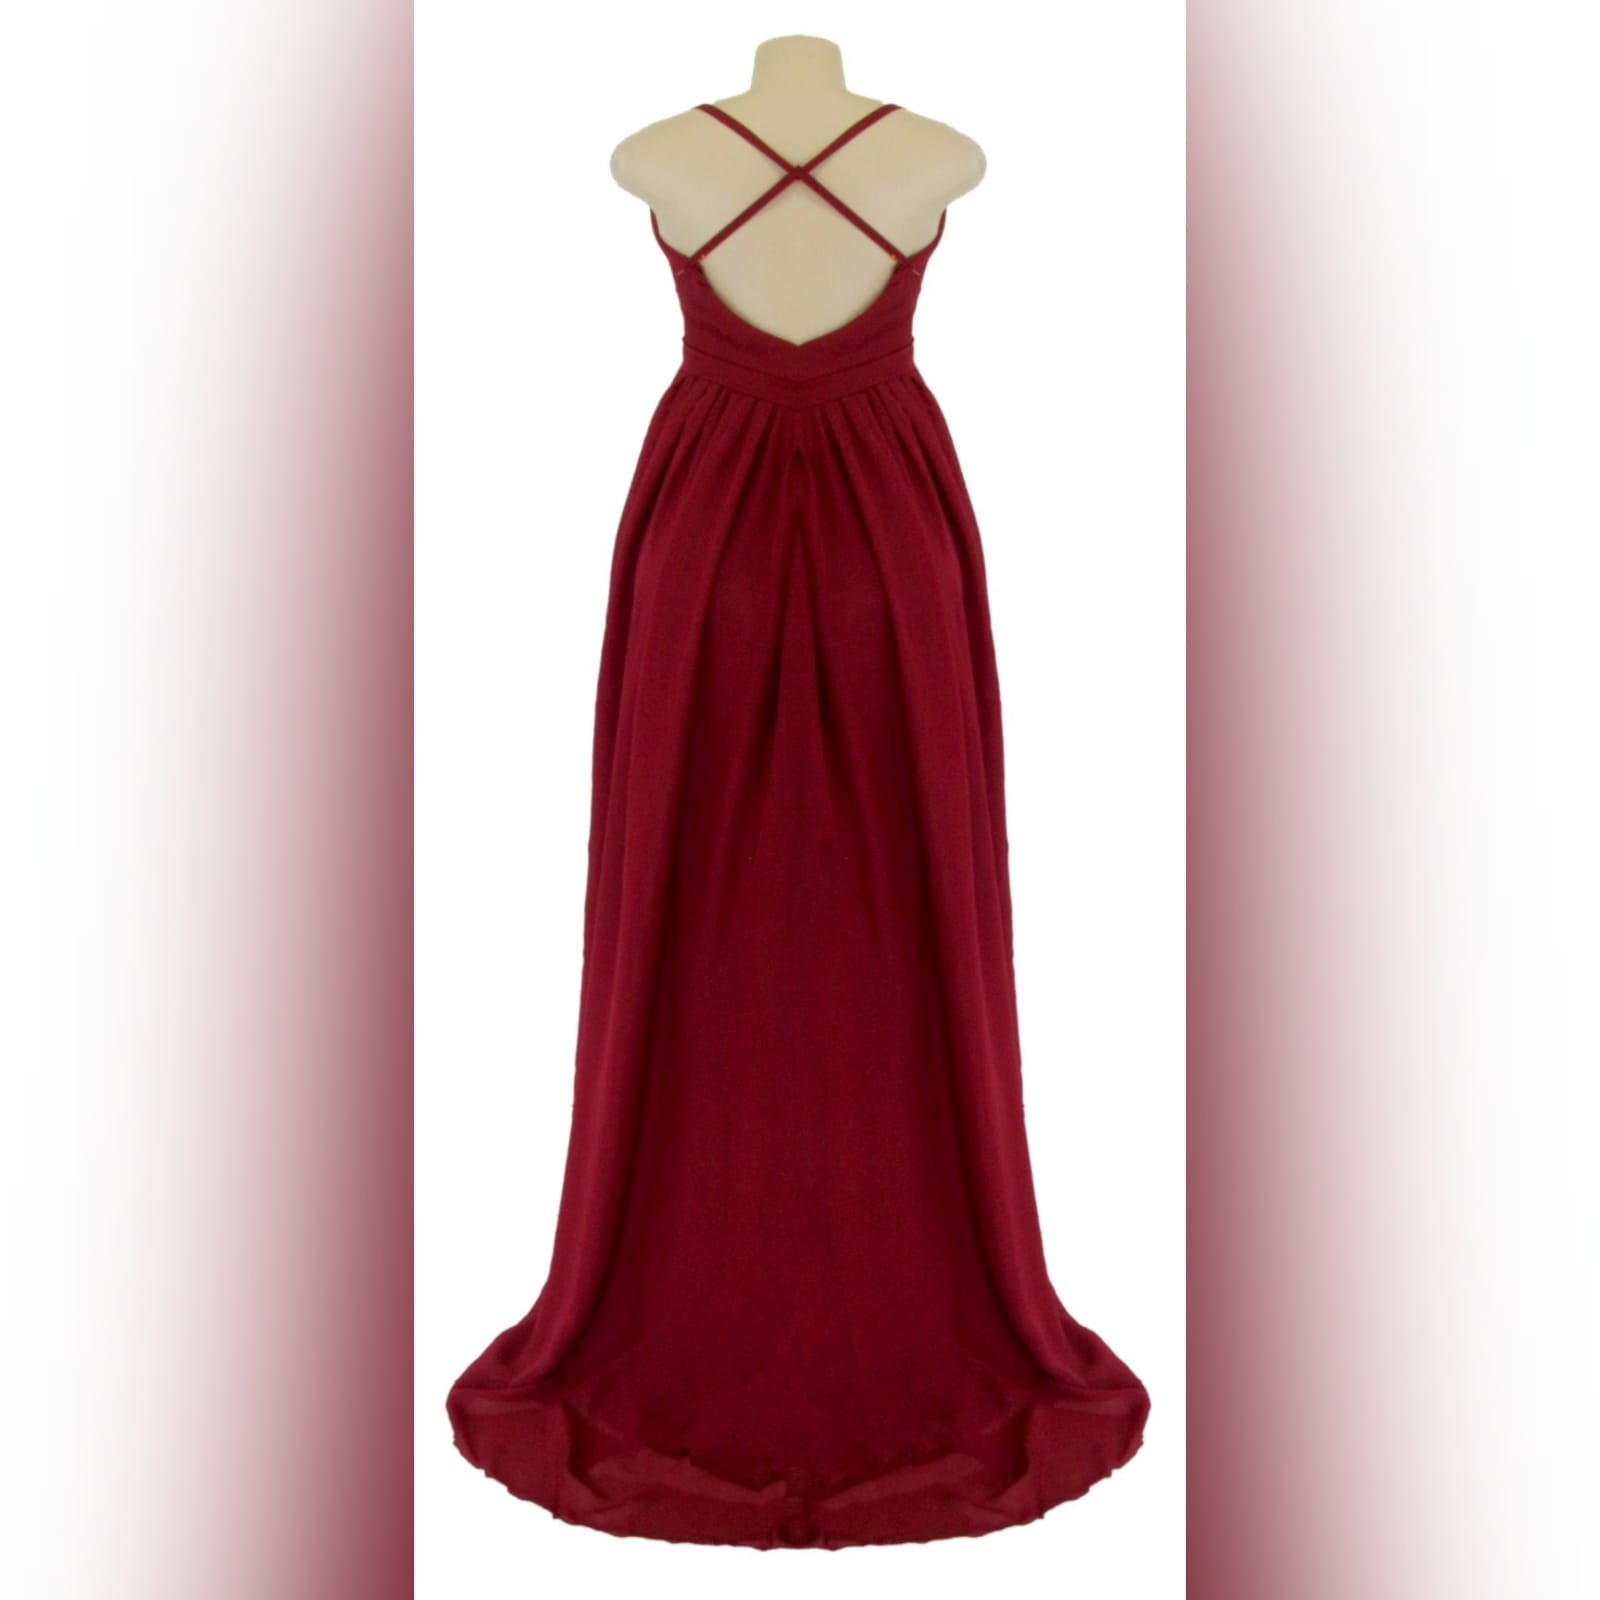 Red long chiffon formal dress 6 red long chiffon formal dress with a v neckline, 2 high slits, rounded open back with thin crossed shoulder straps.